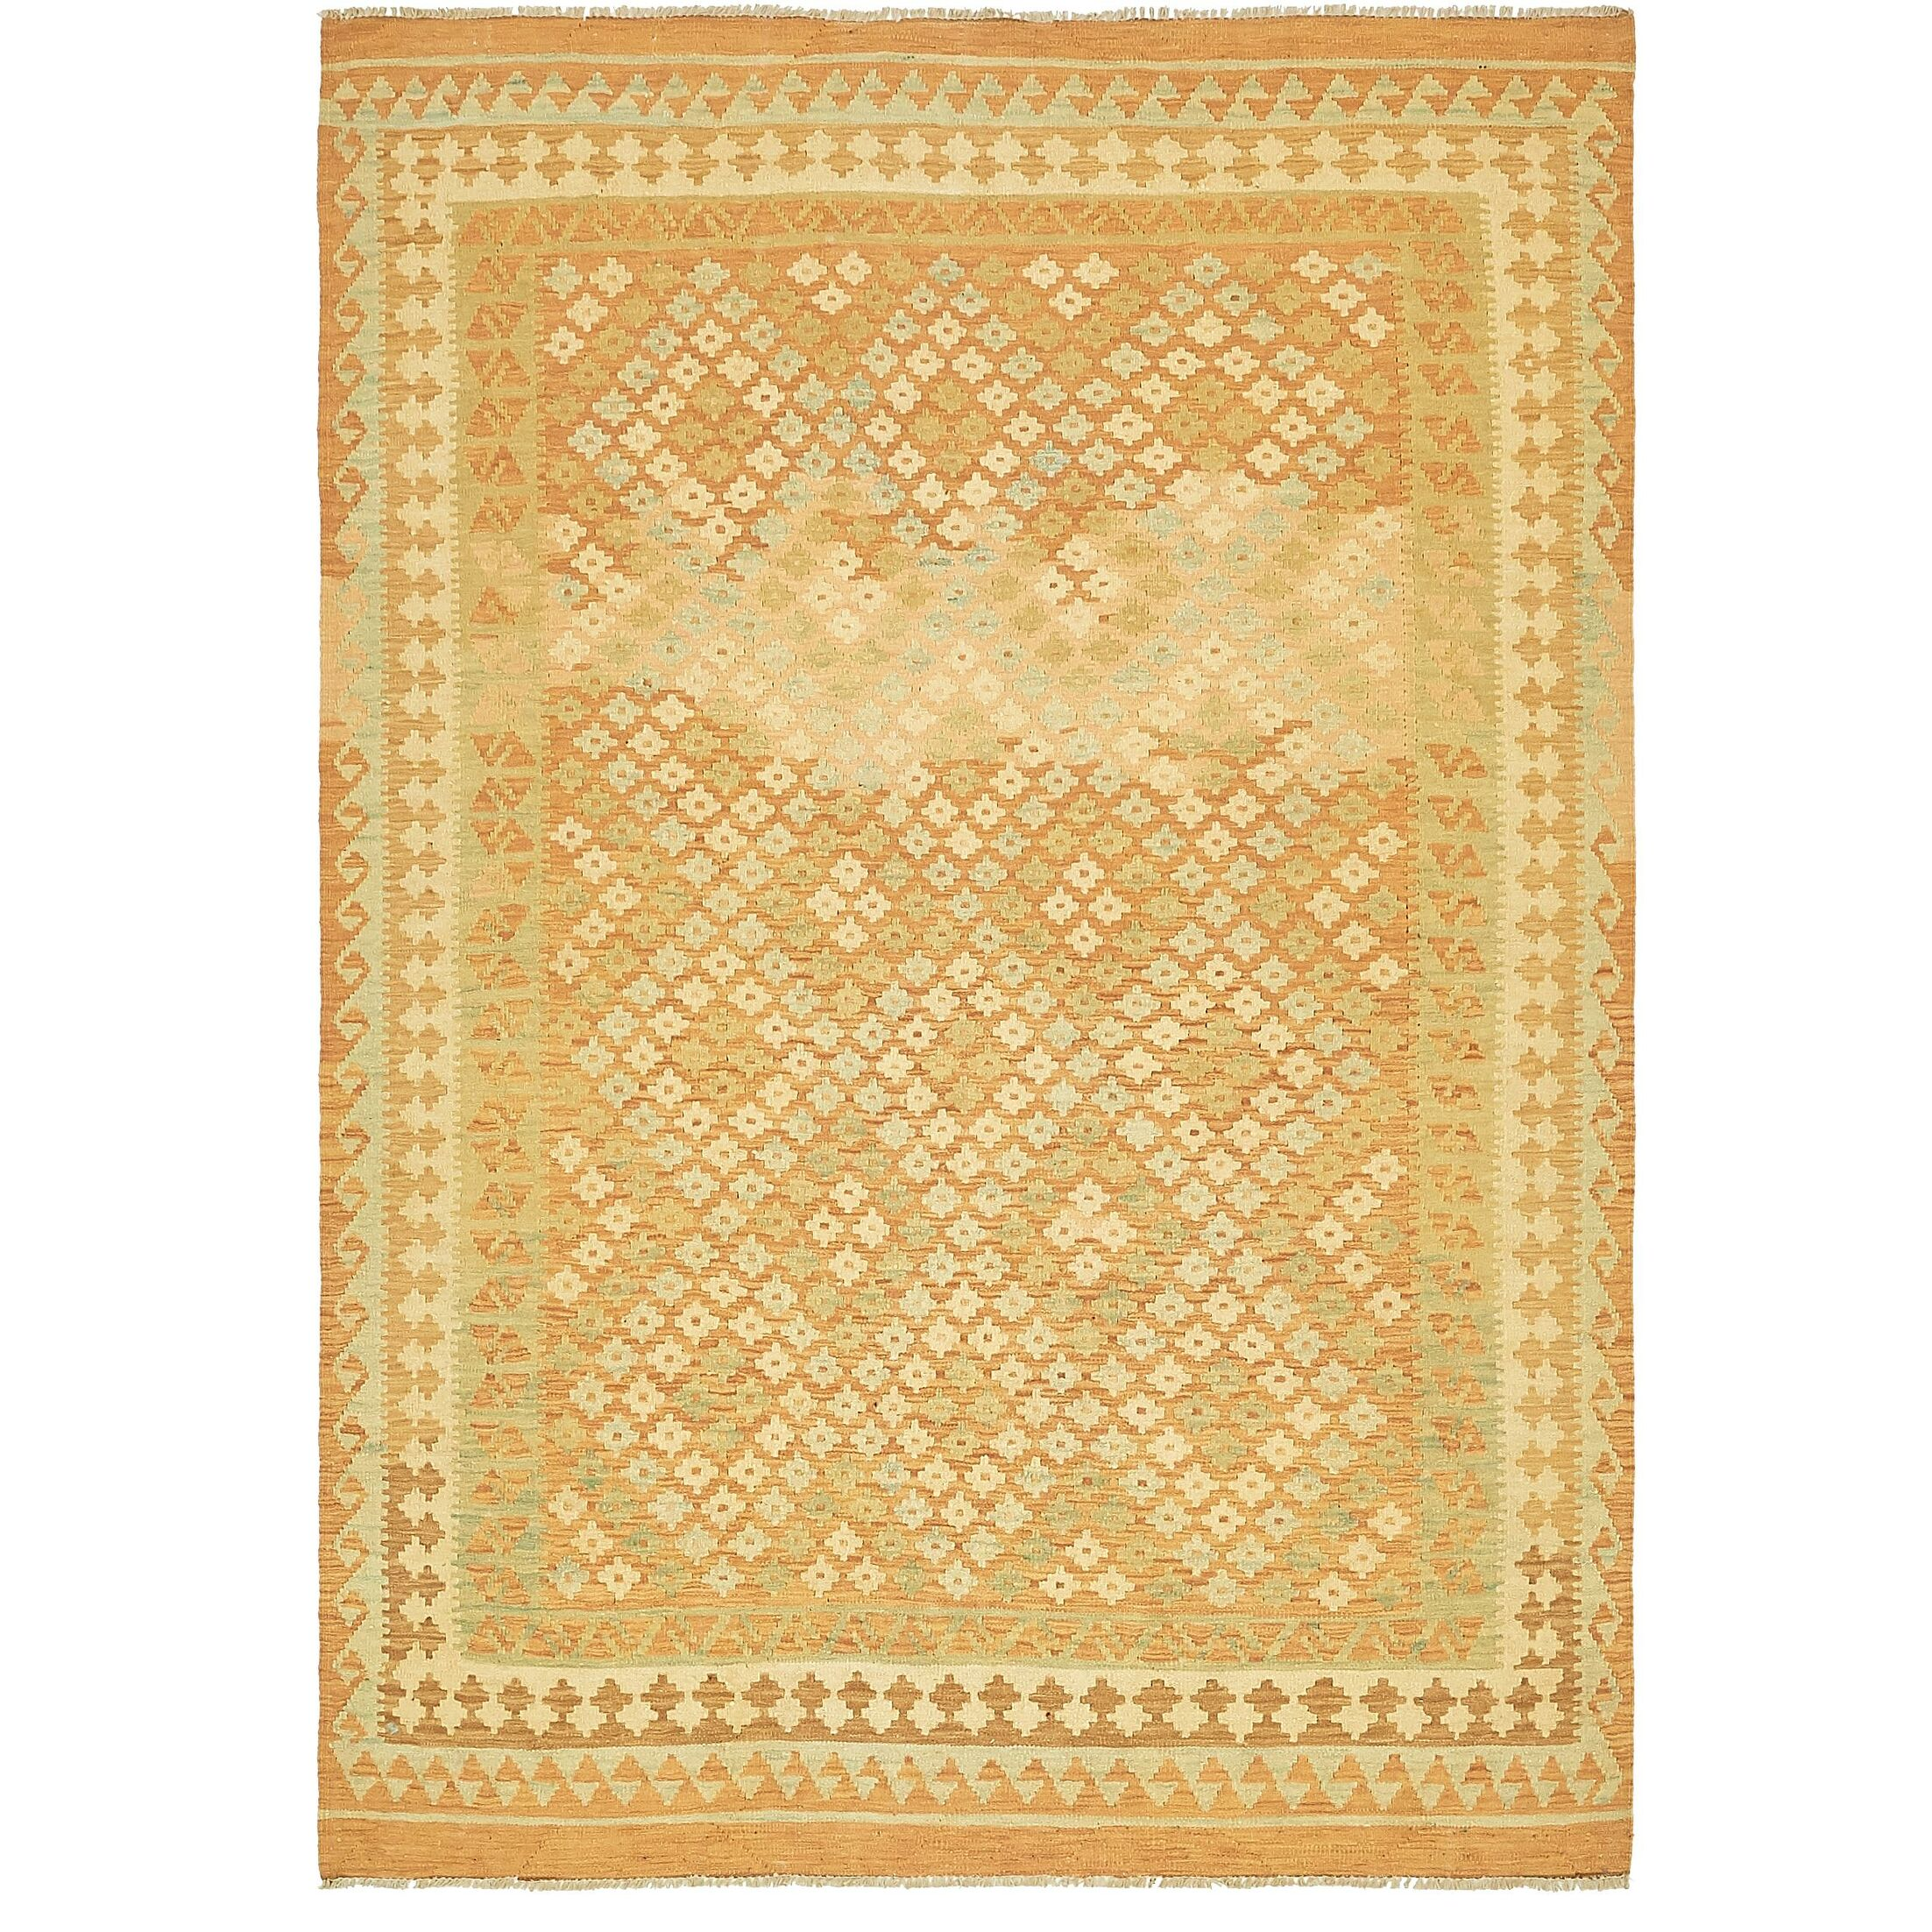 One-of-a-Kind Elland Hand-Knotted Wool Orange/Yellow Area Rug